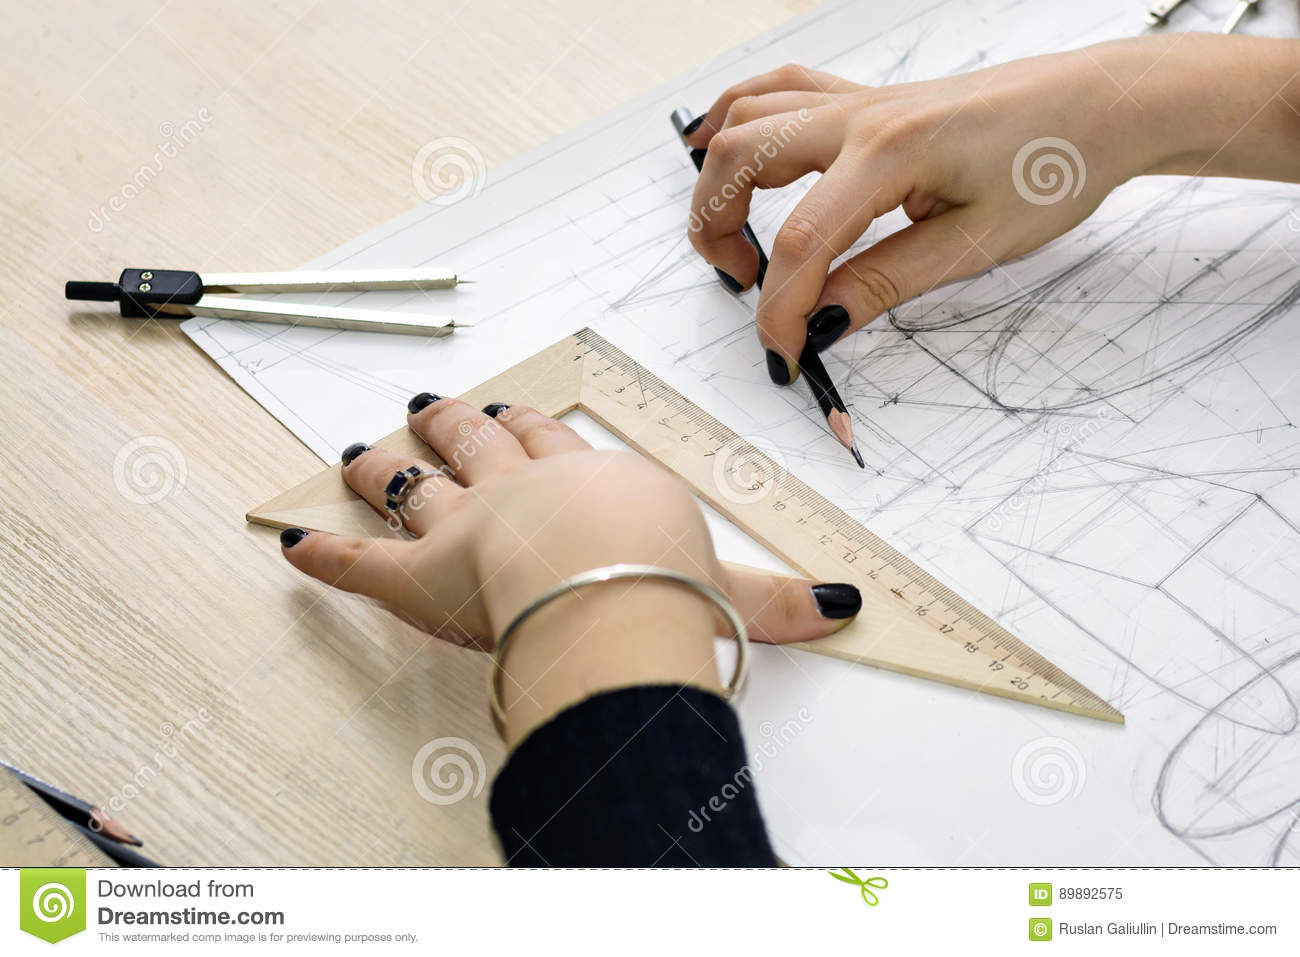 girl architect draws a plan design geometric shapes by pencil on